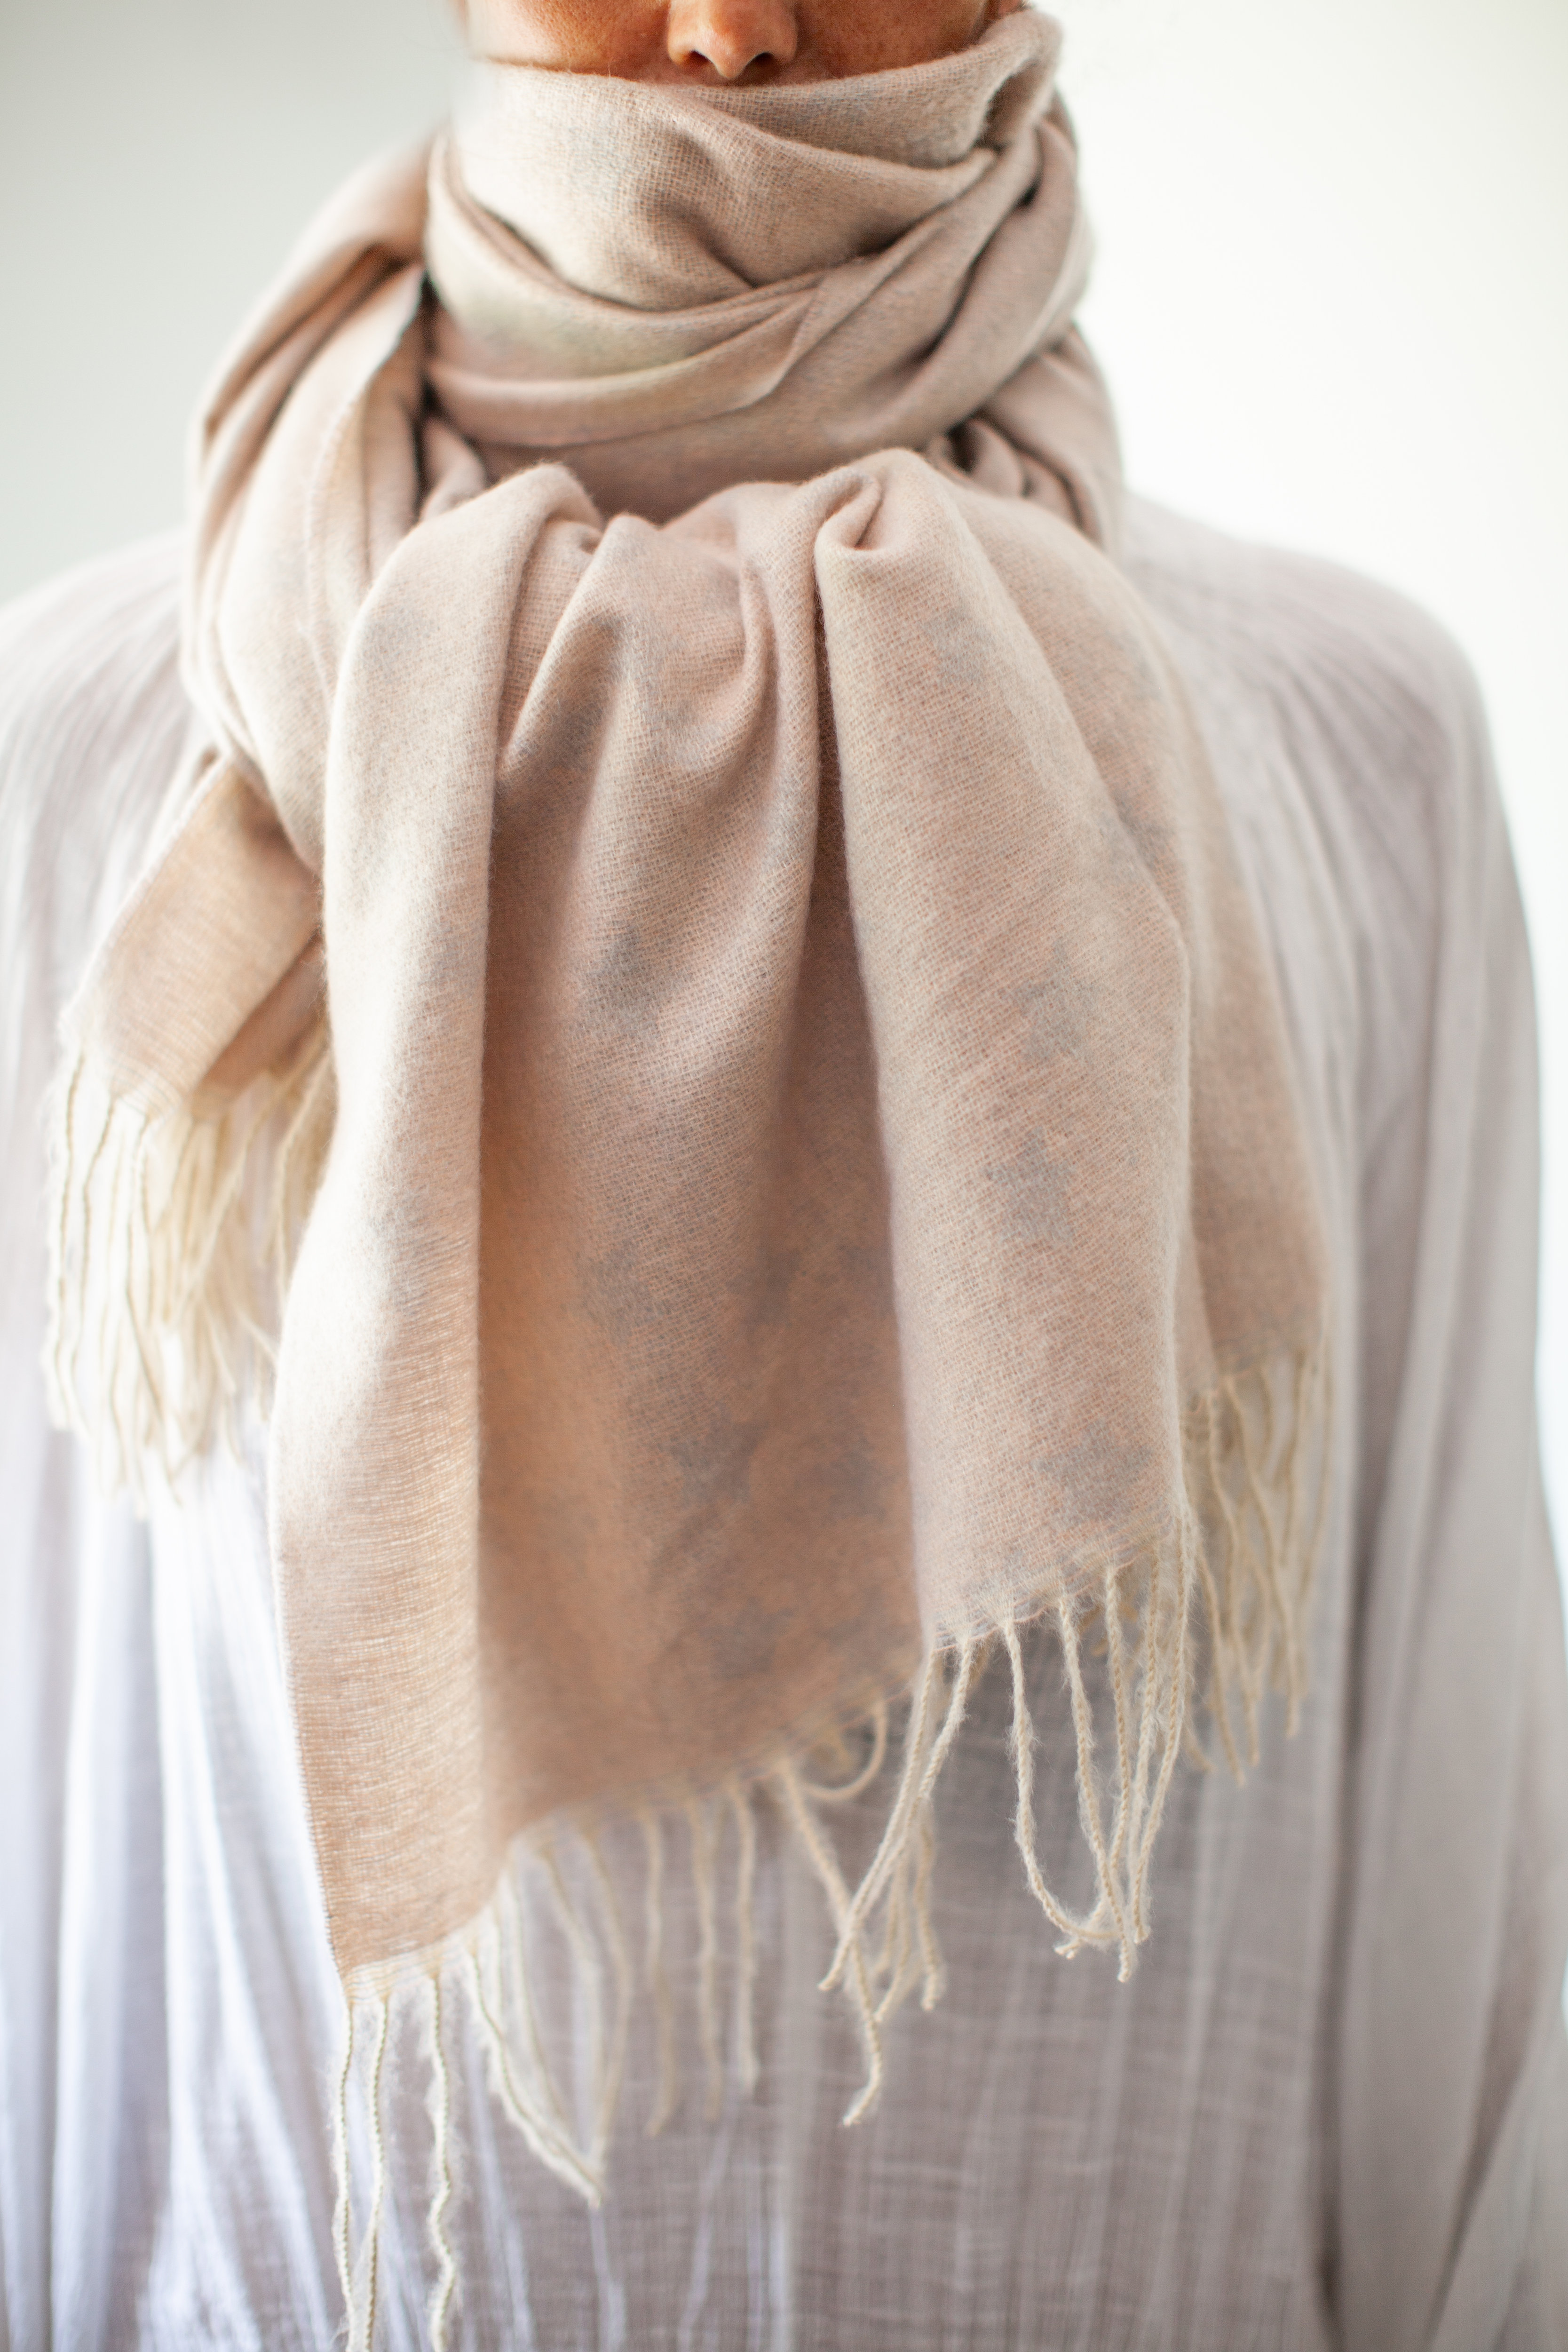 Soft Albi & Mac scarf which comes in a £65 gift box